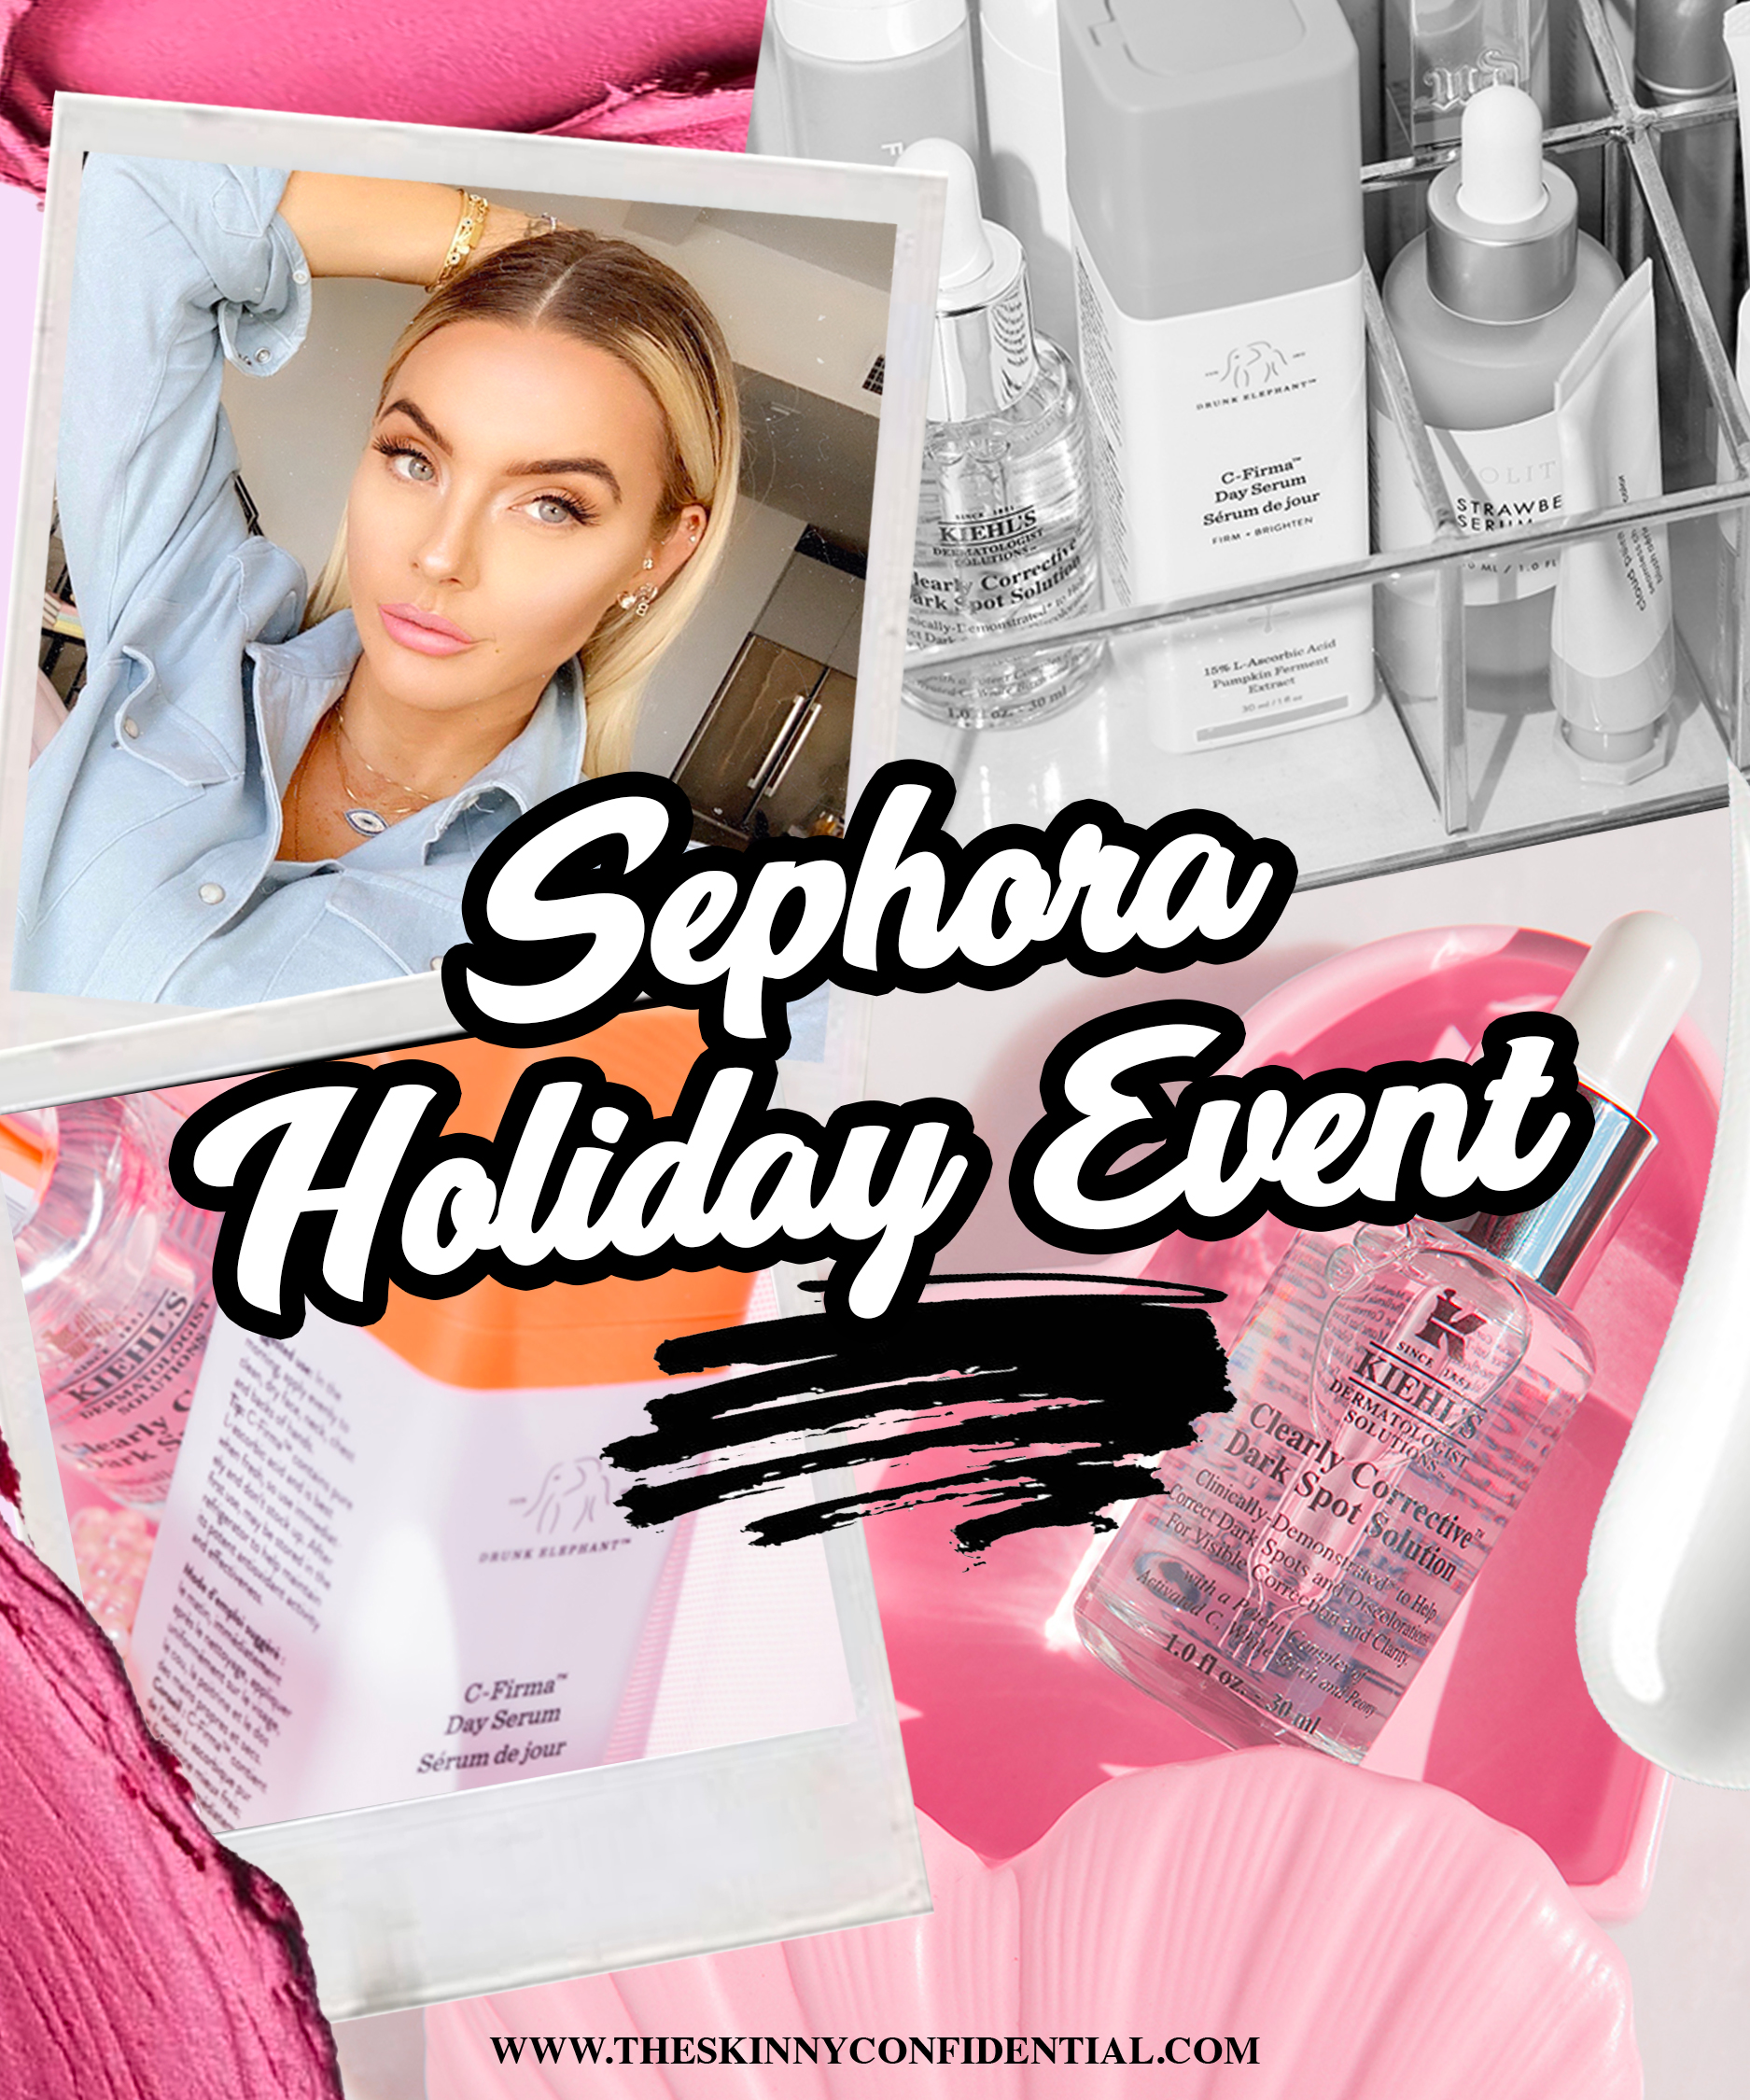 Pregnancy Mask Sucks, So Here's Some Tips and Tricks Using Products From The Sephora Holiday Bonus Event